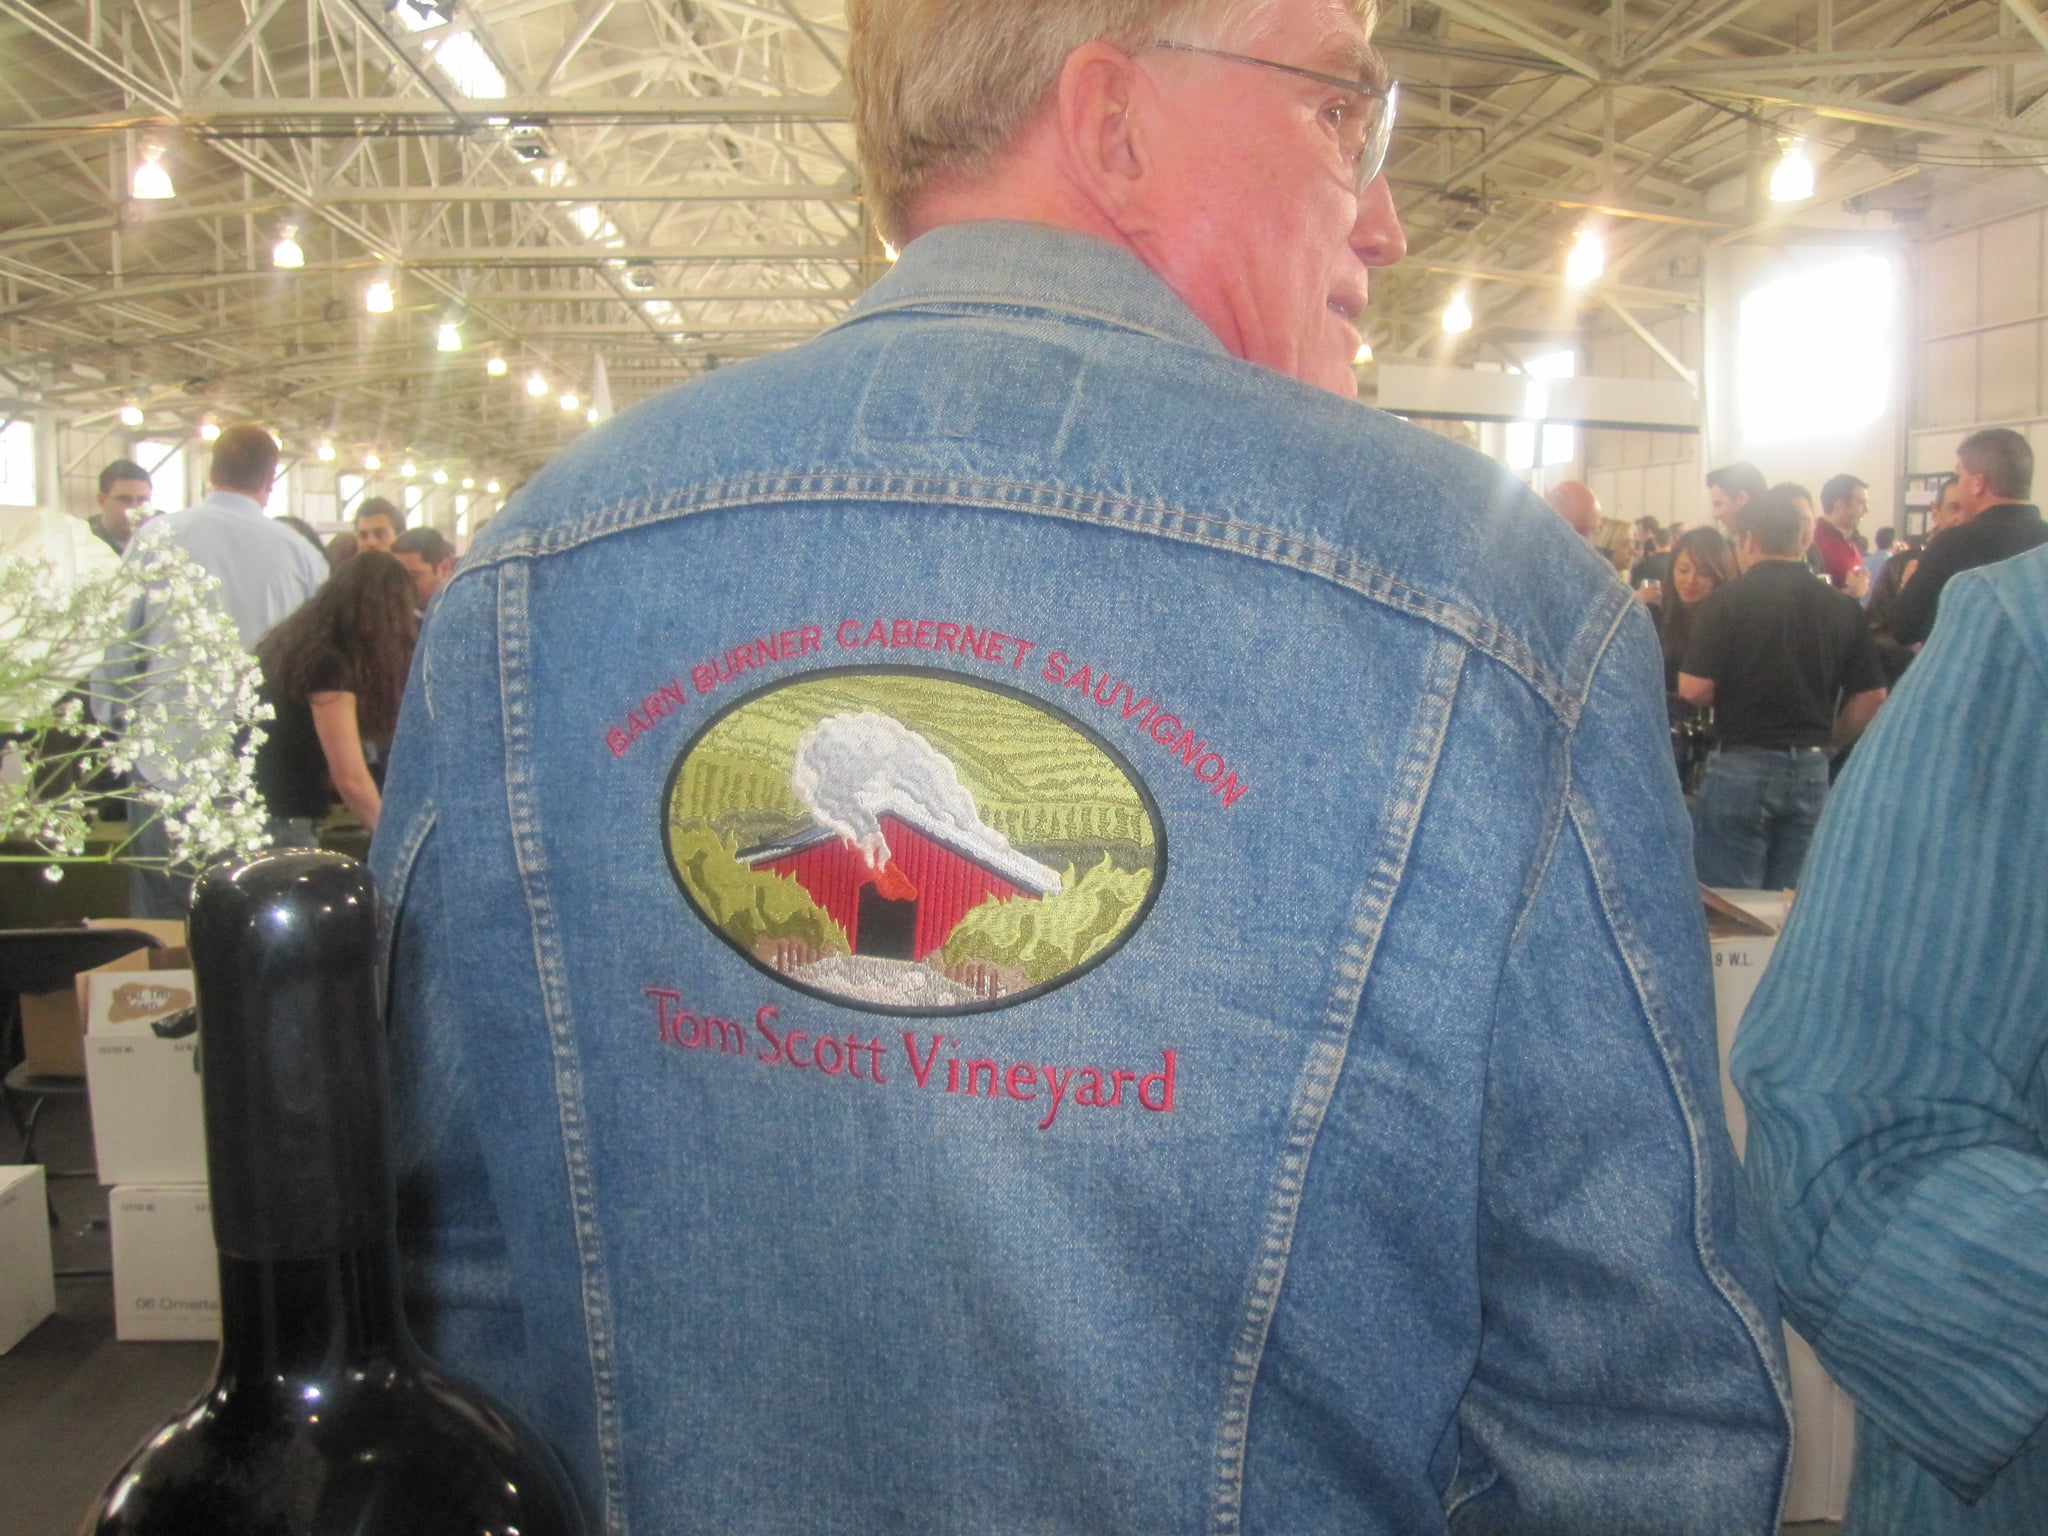 Winemaker Tom Scott is so passionate about his winery, it's patched onto his jean jacket.